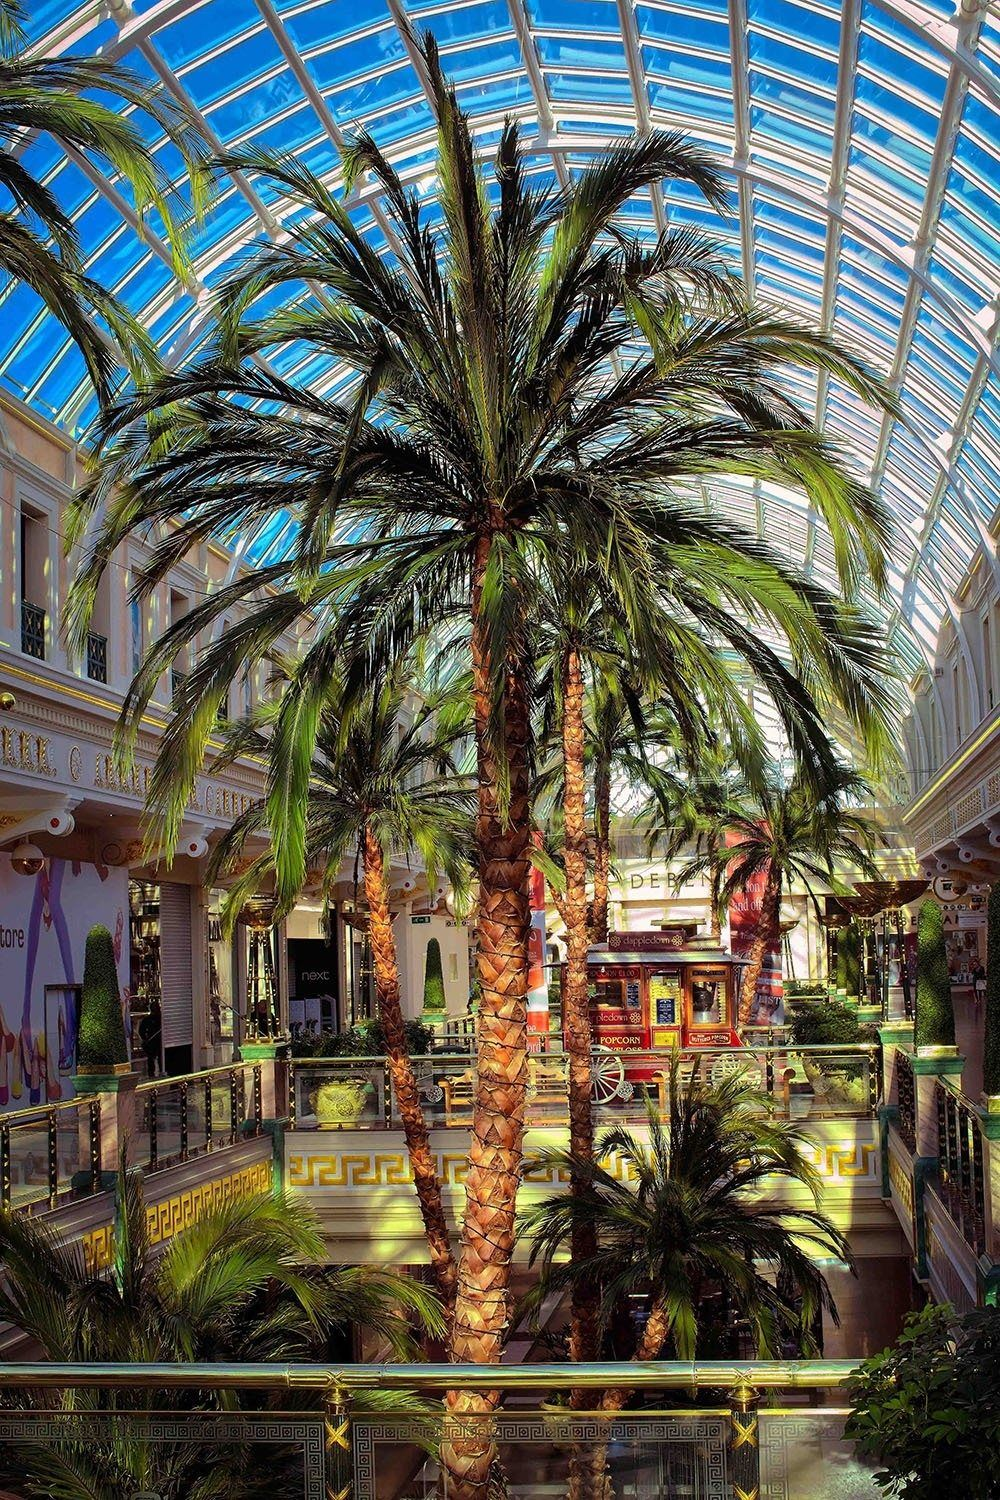 Preserved Giant Date Palm Tree at Trafford Centre Mall in